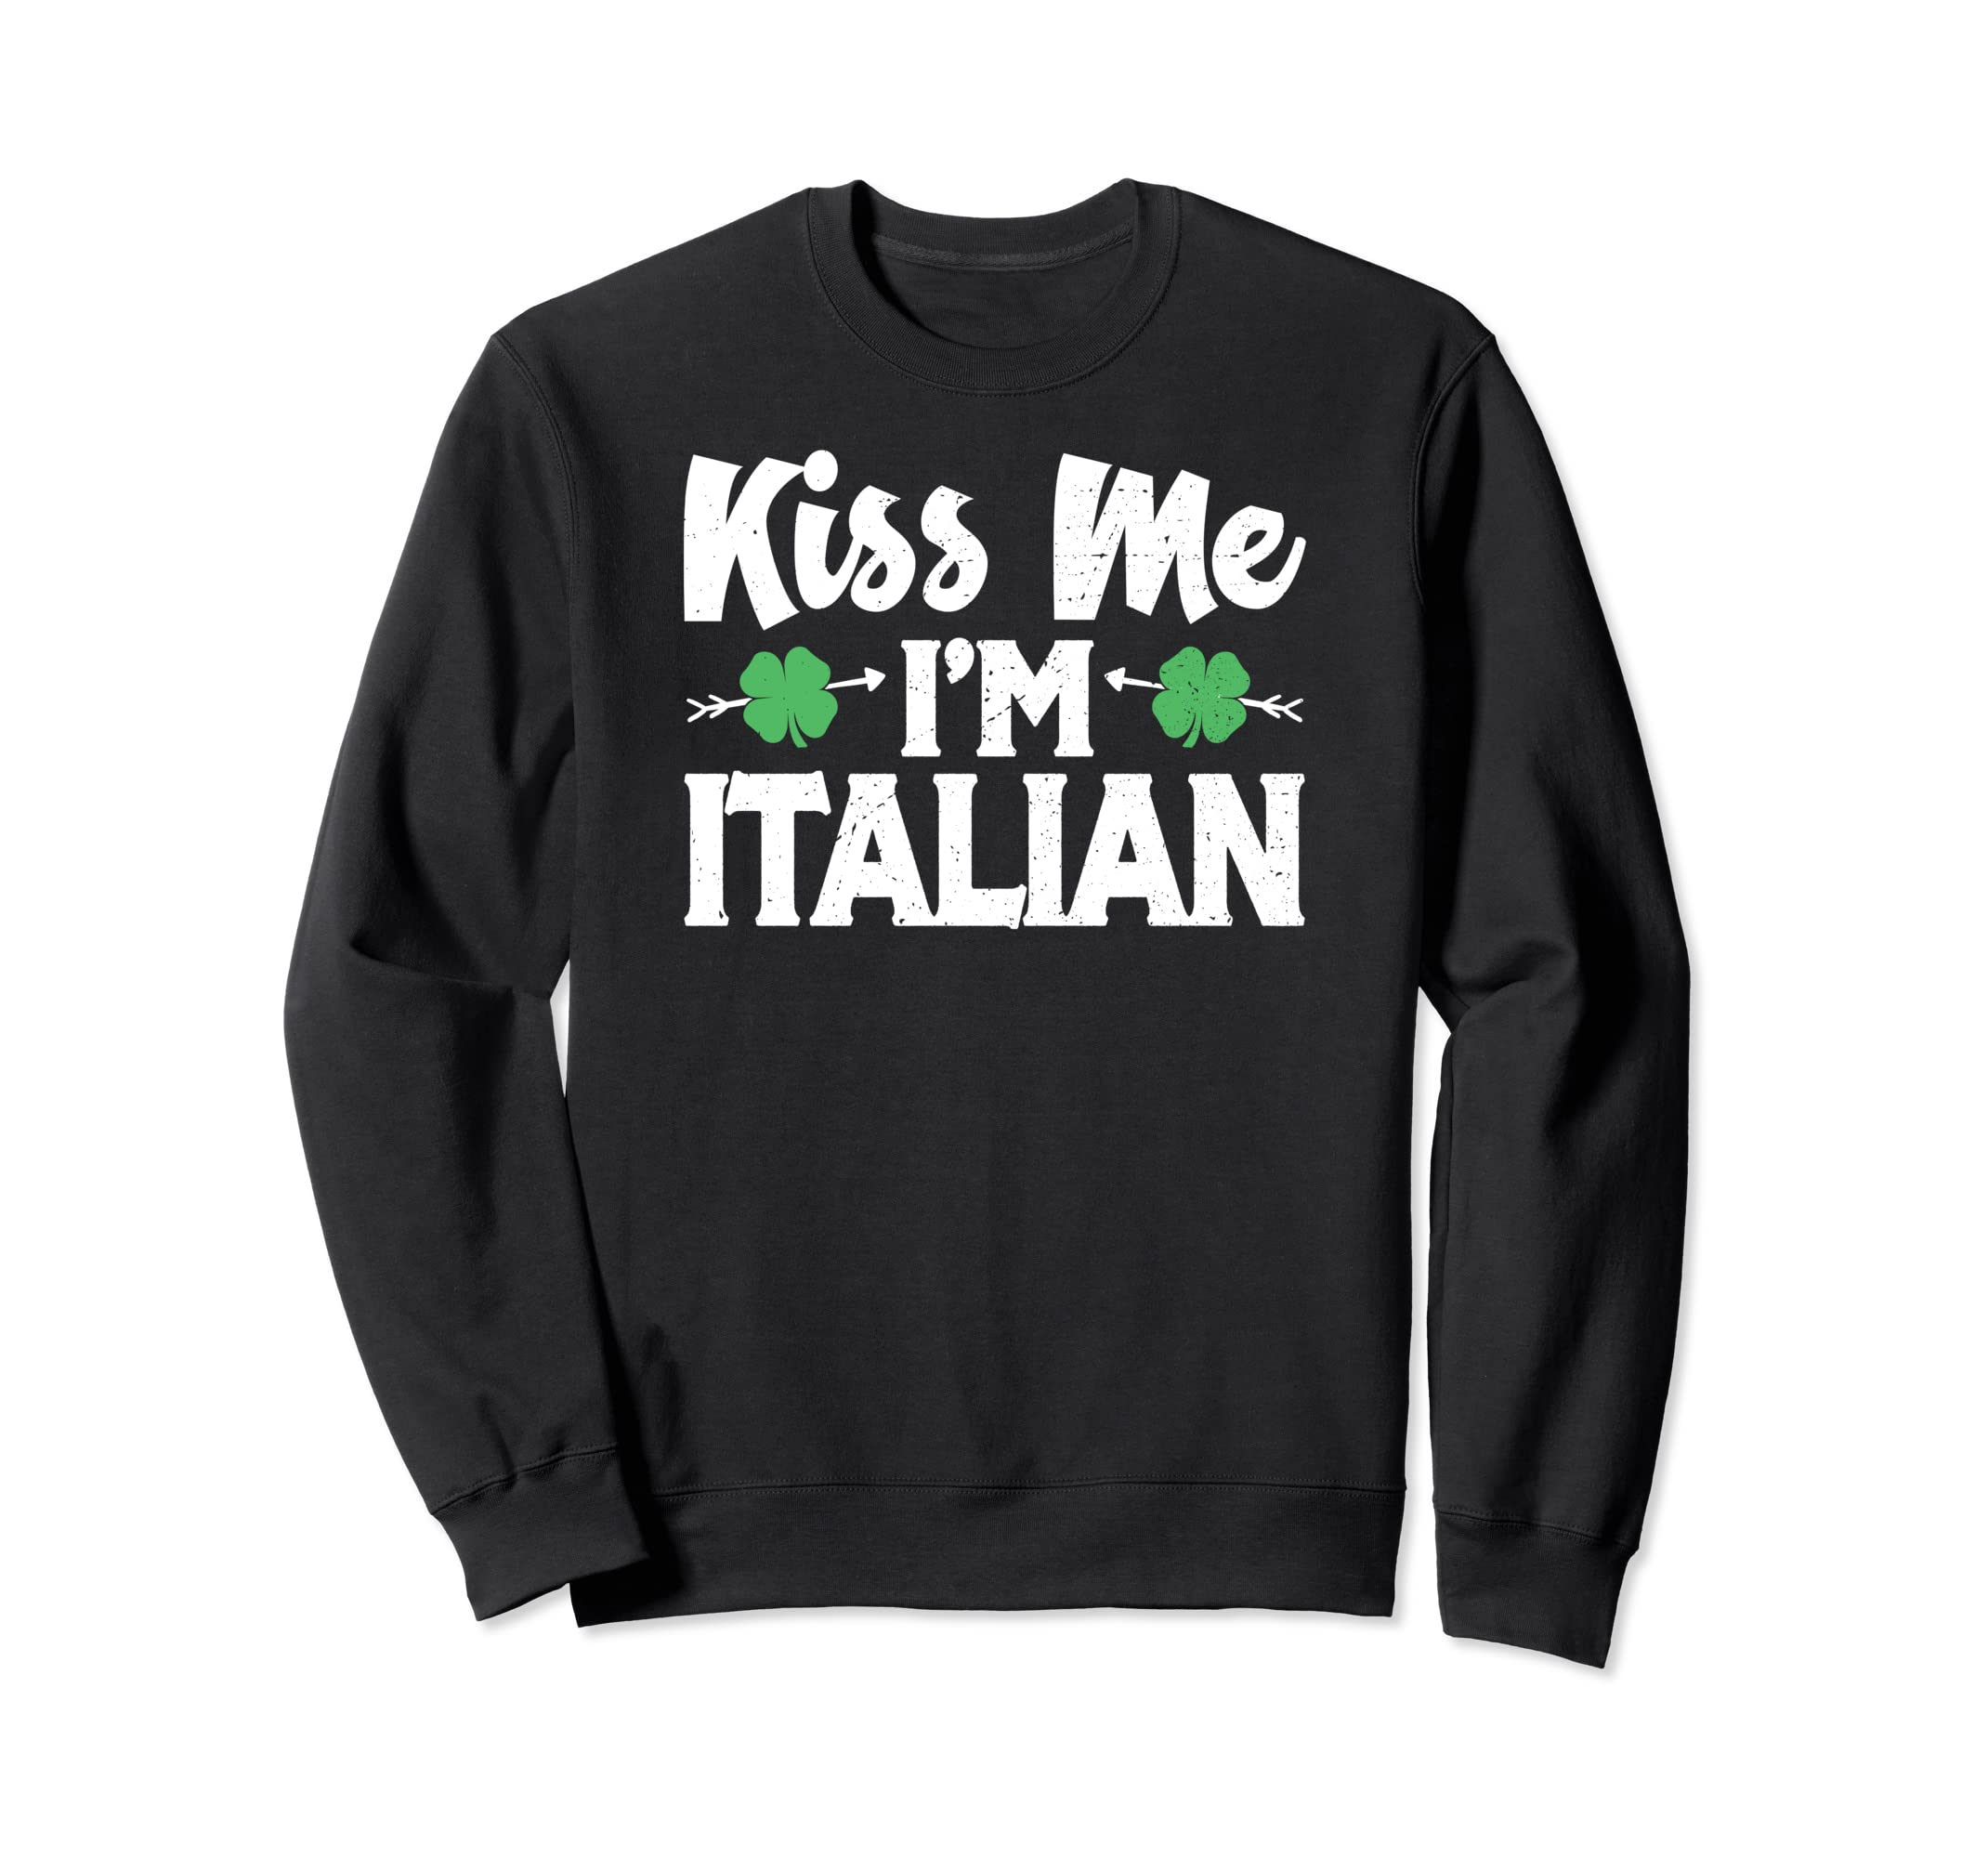 b0b595c948 Amazon.com  Kiss Me I m Italian Pride St. Patrick s Day Sweatshirt  Clothing